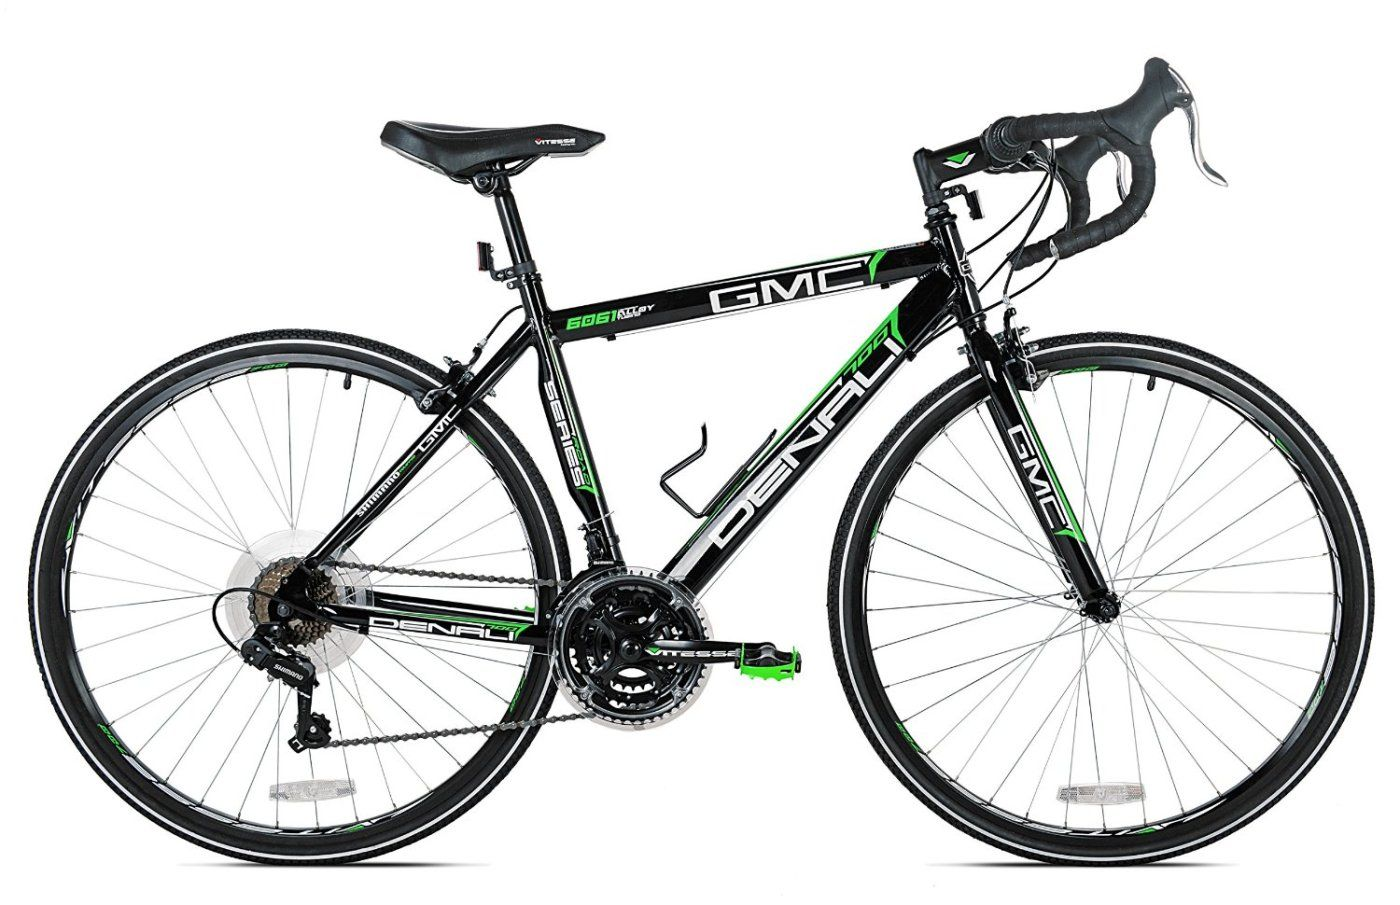 Gmc Denali Road Bike Review Gmc Road Bike Experience